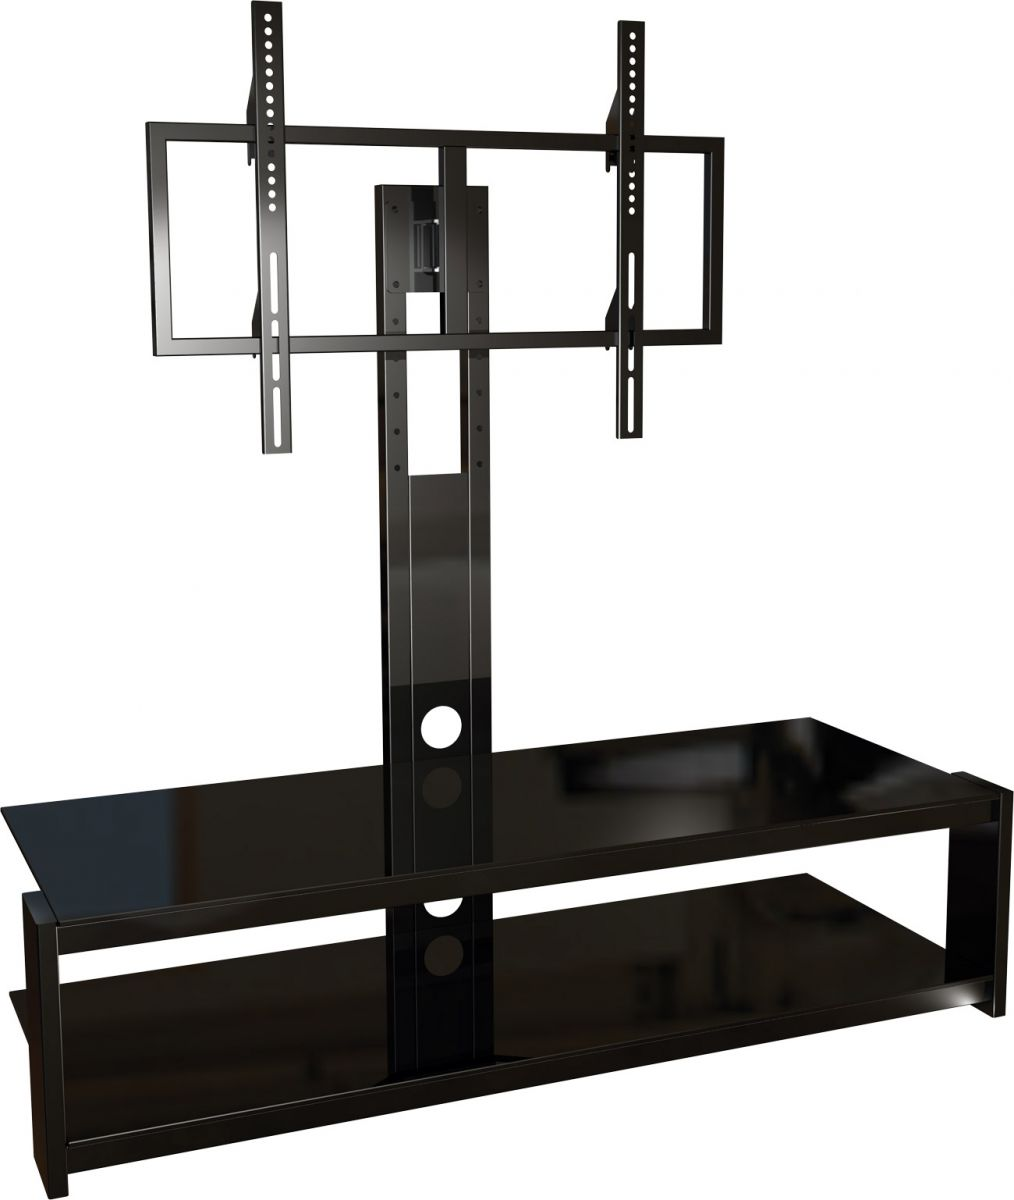 norstone beos meubles avec support son vid. Black Bedroom Furniture Sets. Home Design Ideas